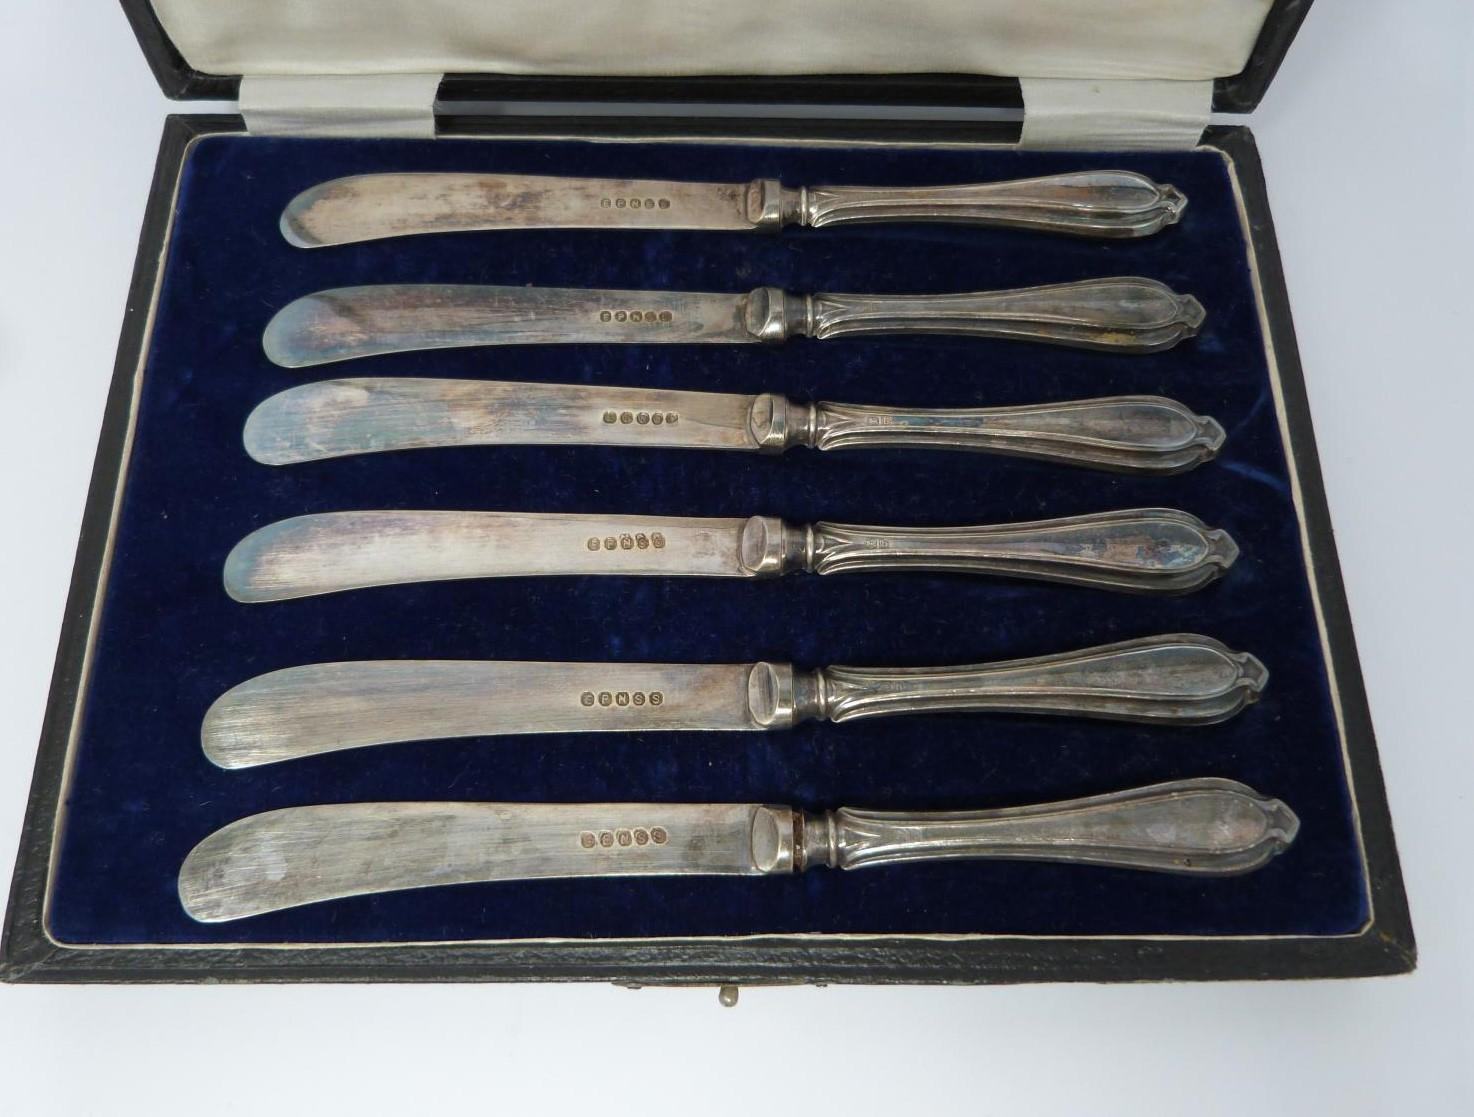 3 cases of silver handled knives, two sets, small knives, epns blades, silver, hollow handles ( - Image 5 of 13